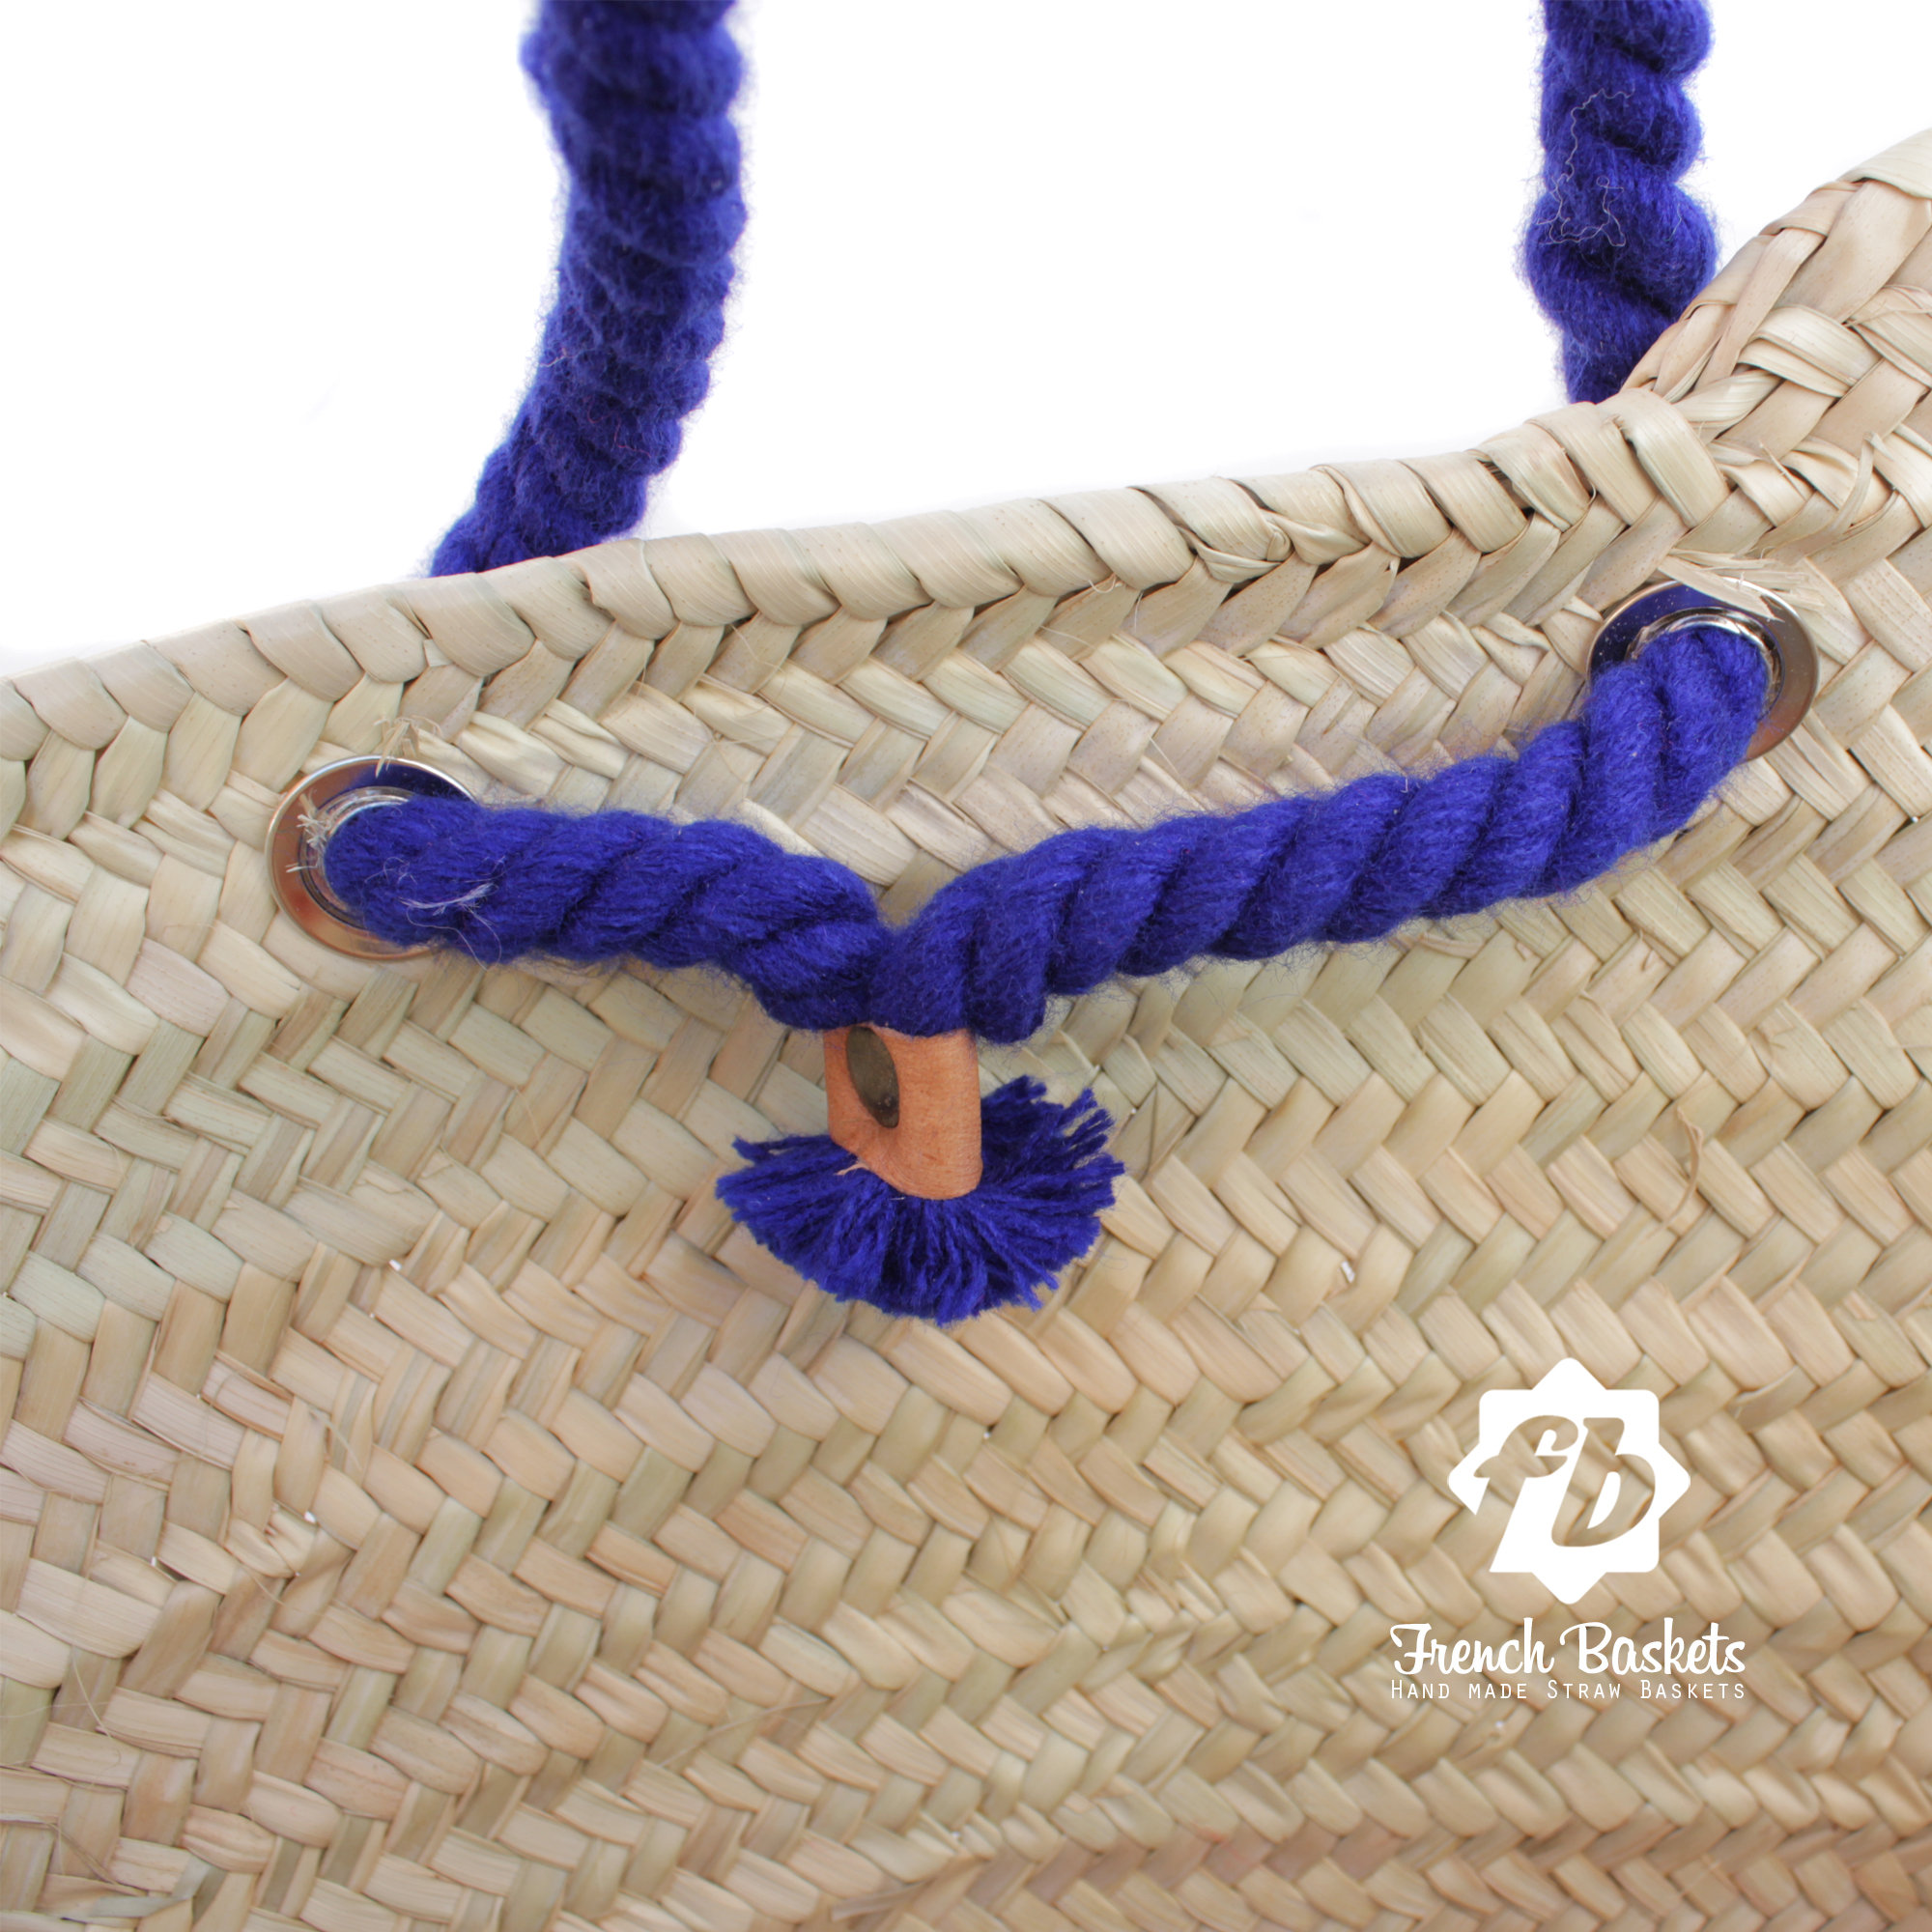 Customized straw bags New year gifts French baskets